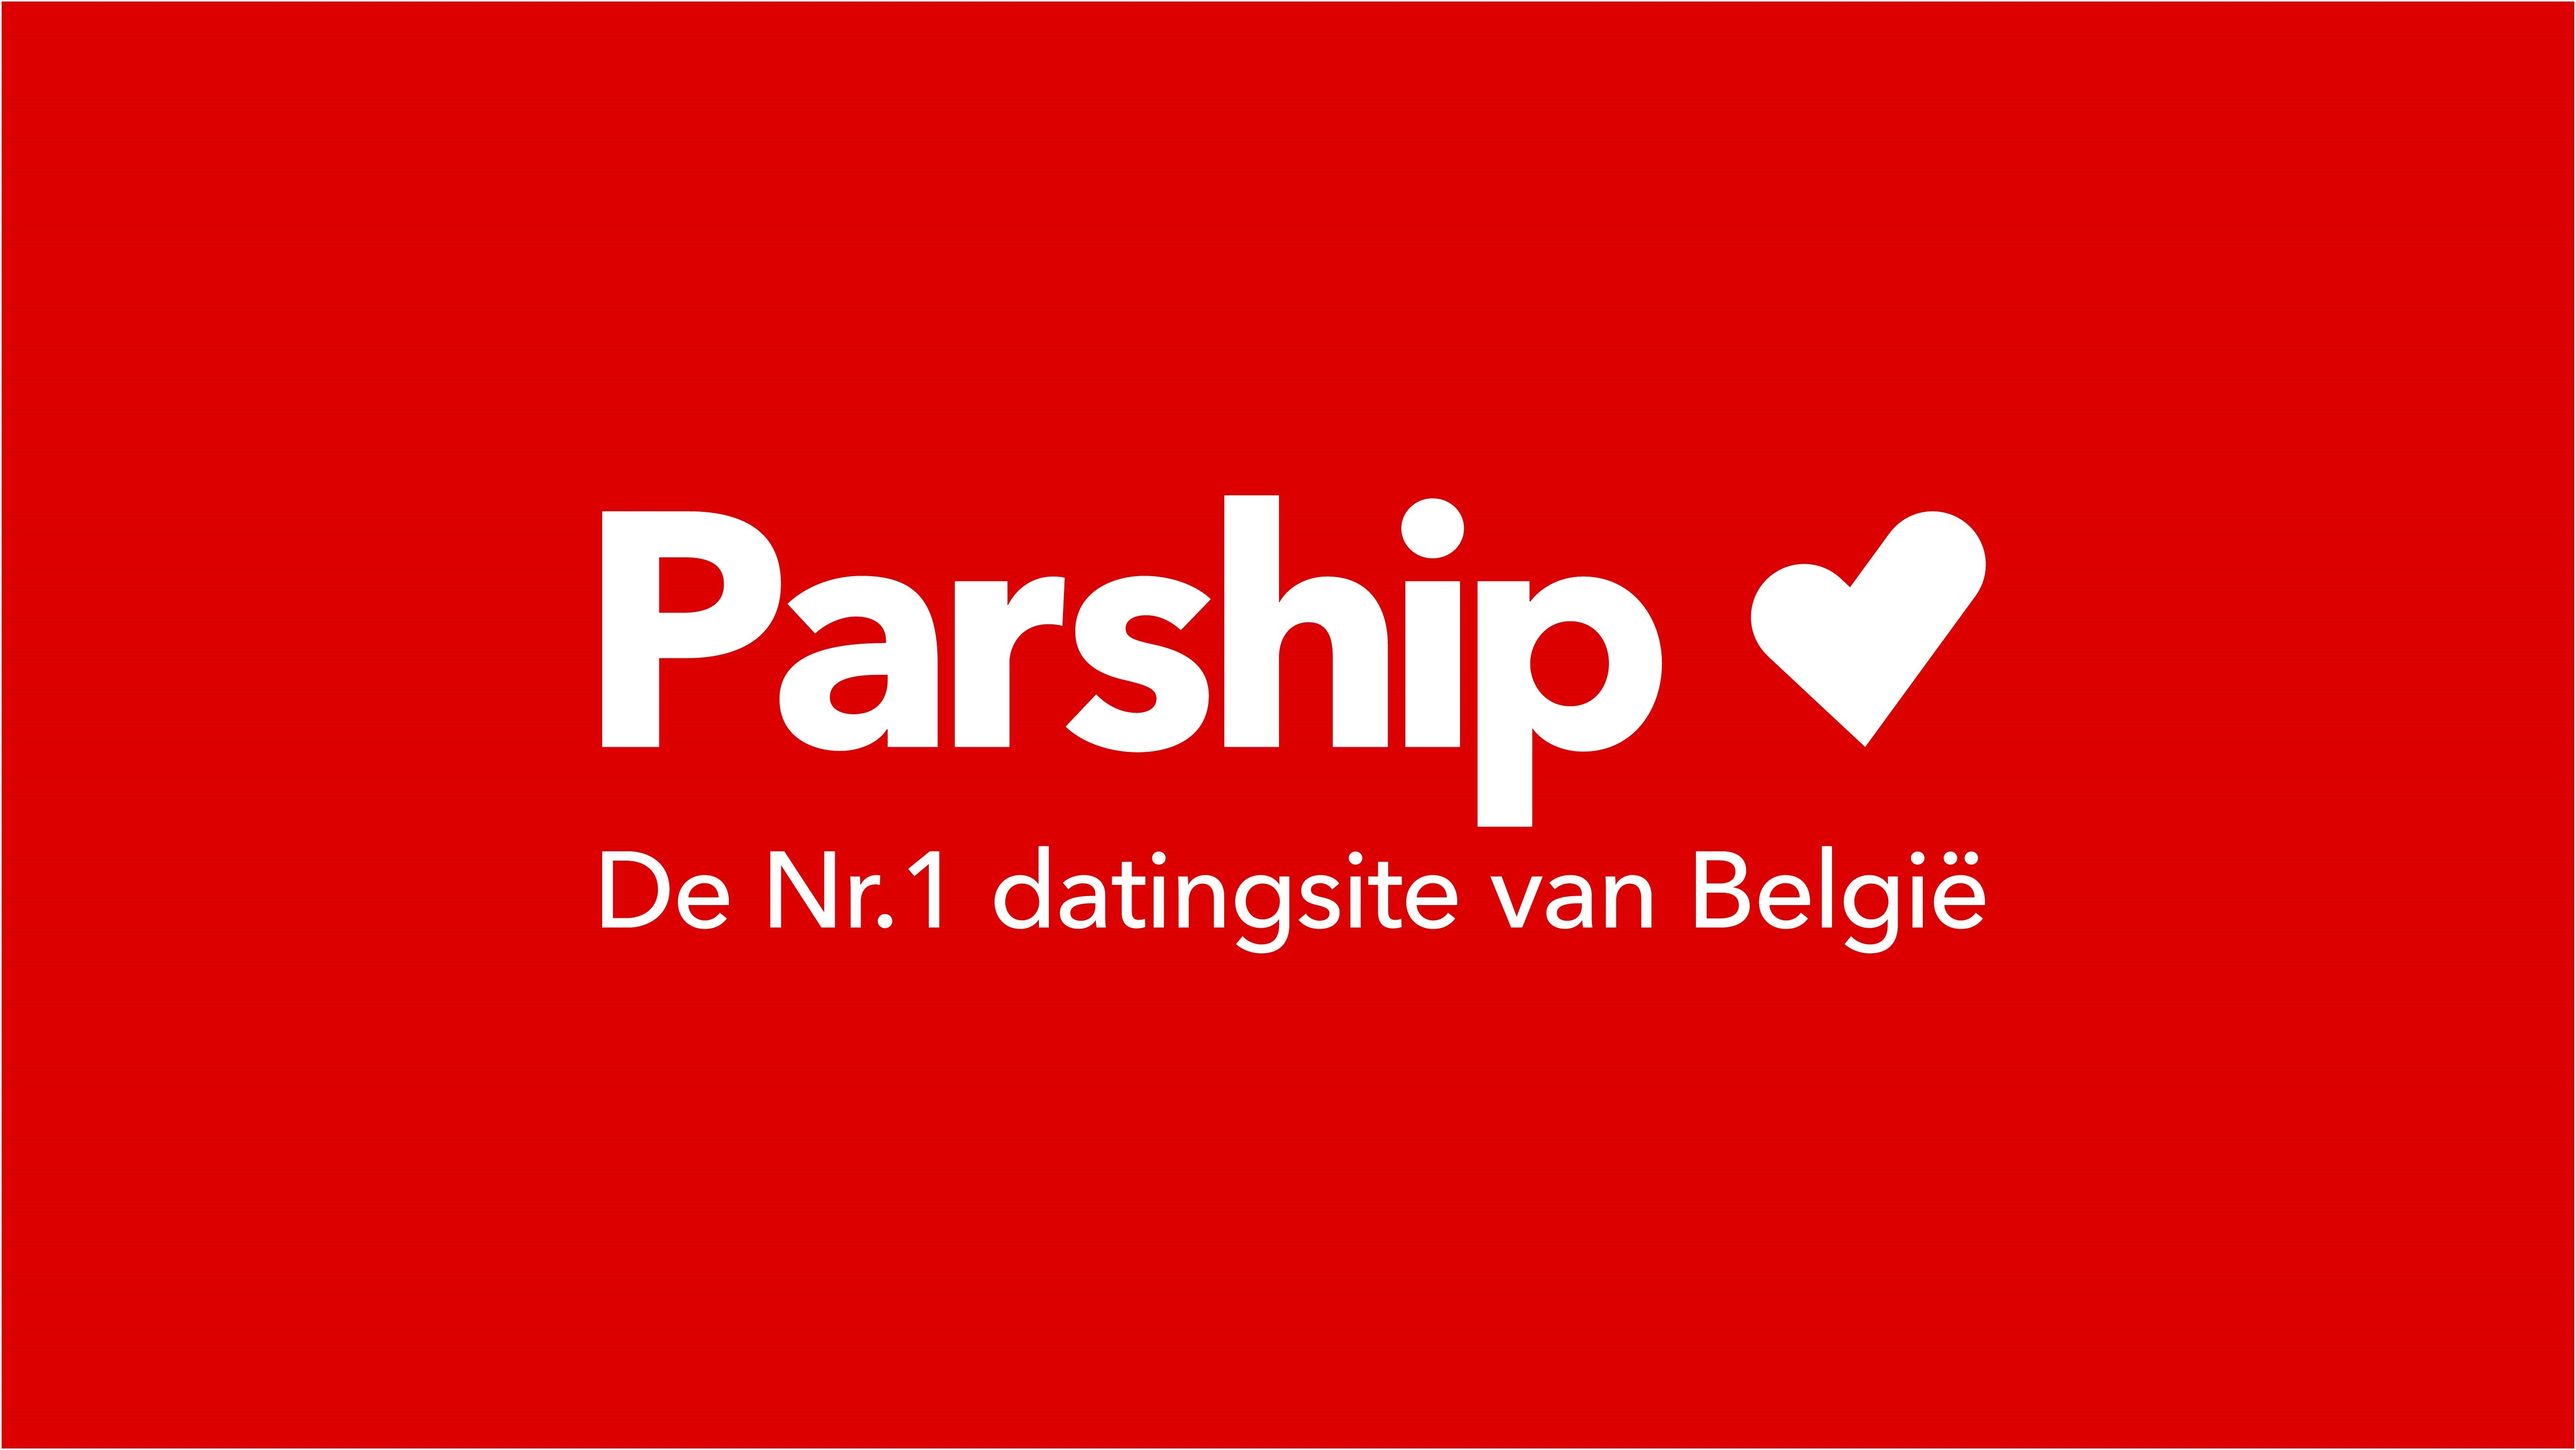 Parship""